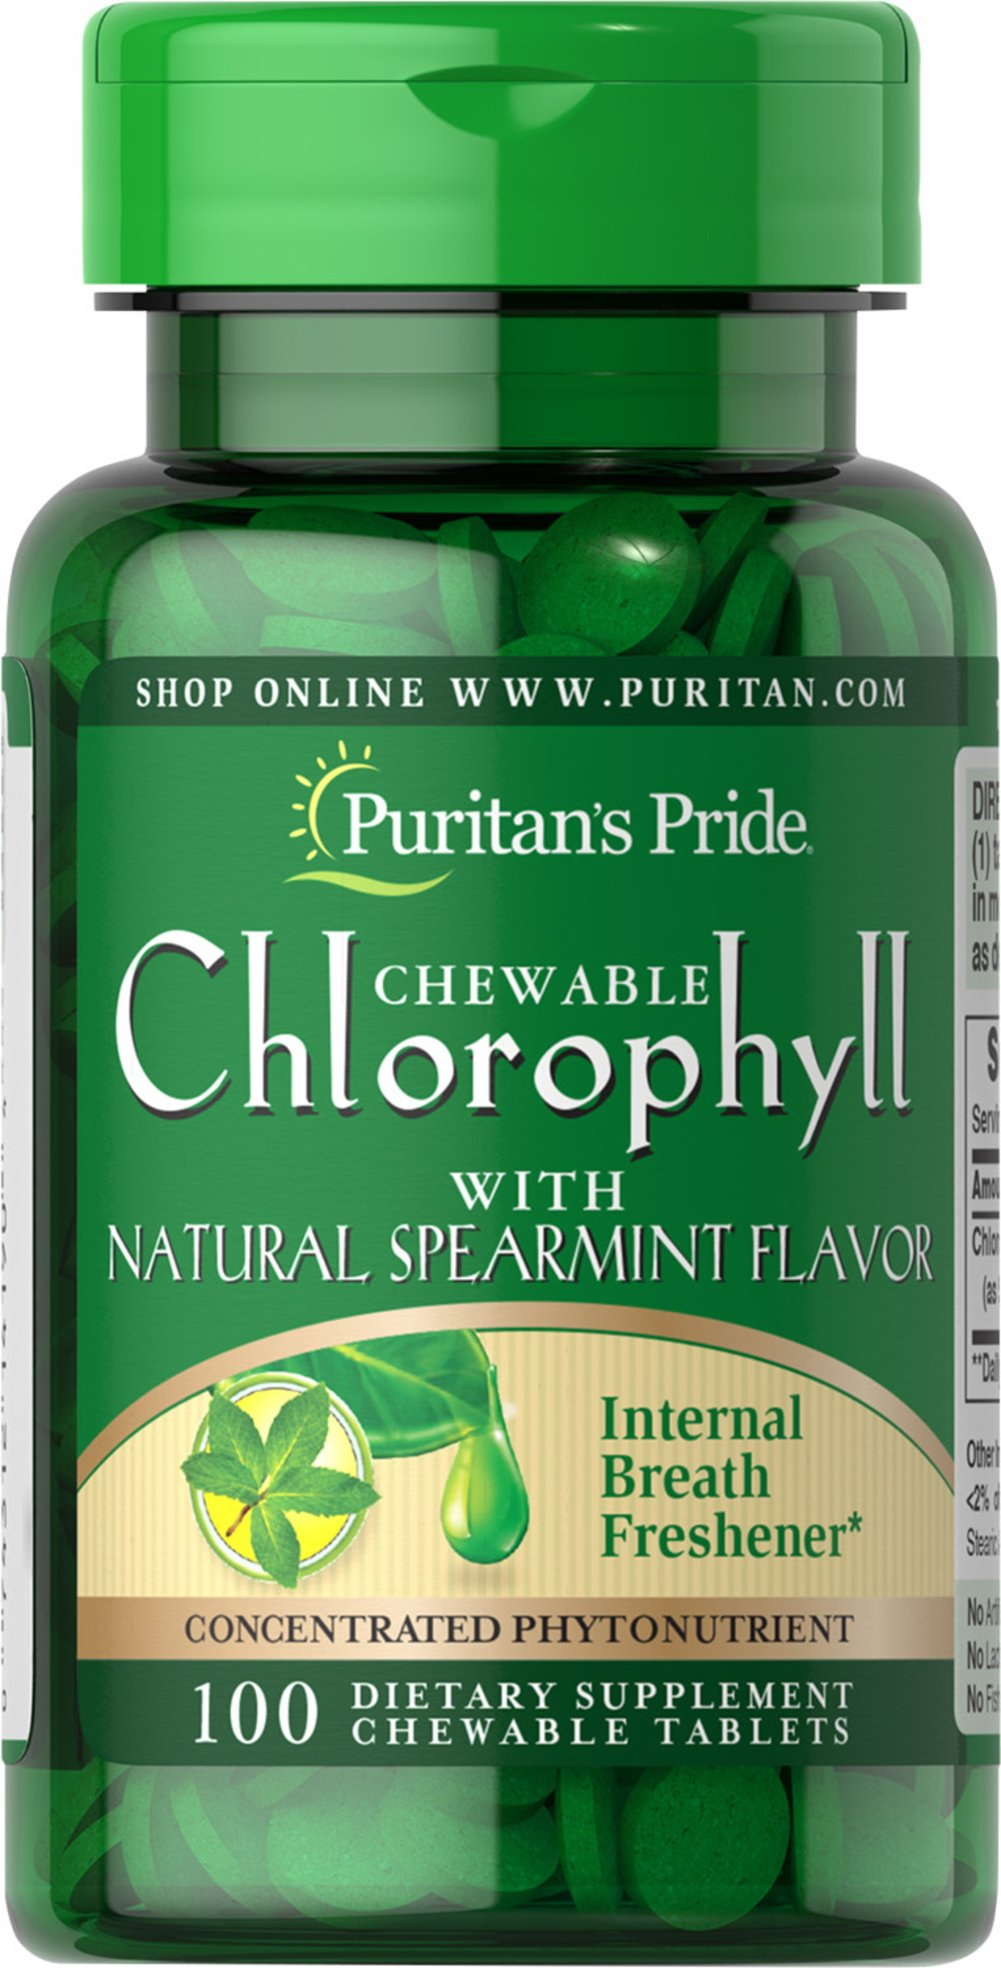 Chewable Chlorophyll with Natural Spearmint Flavor  100 Chewables 3 mg $4.49